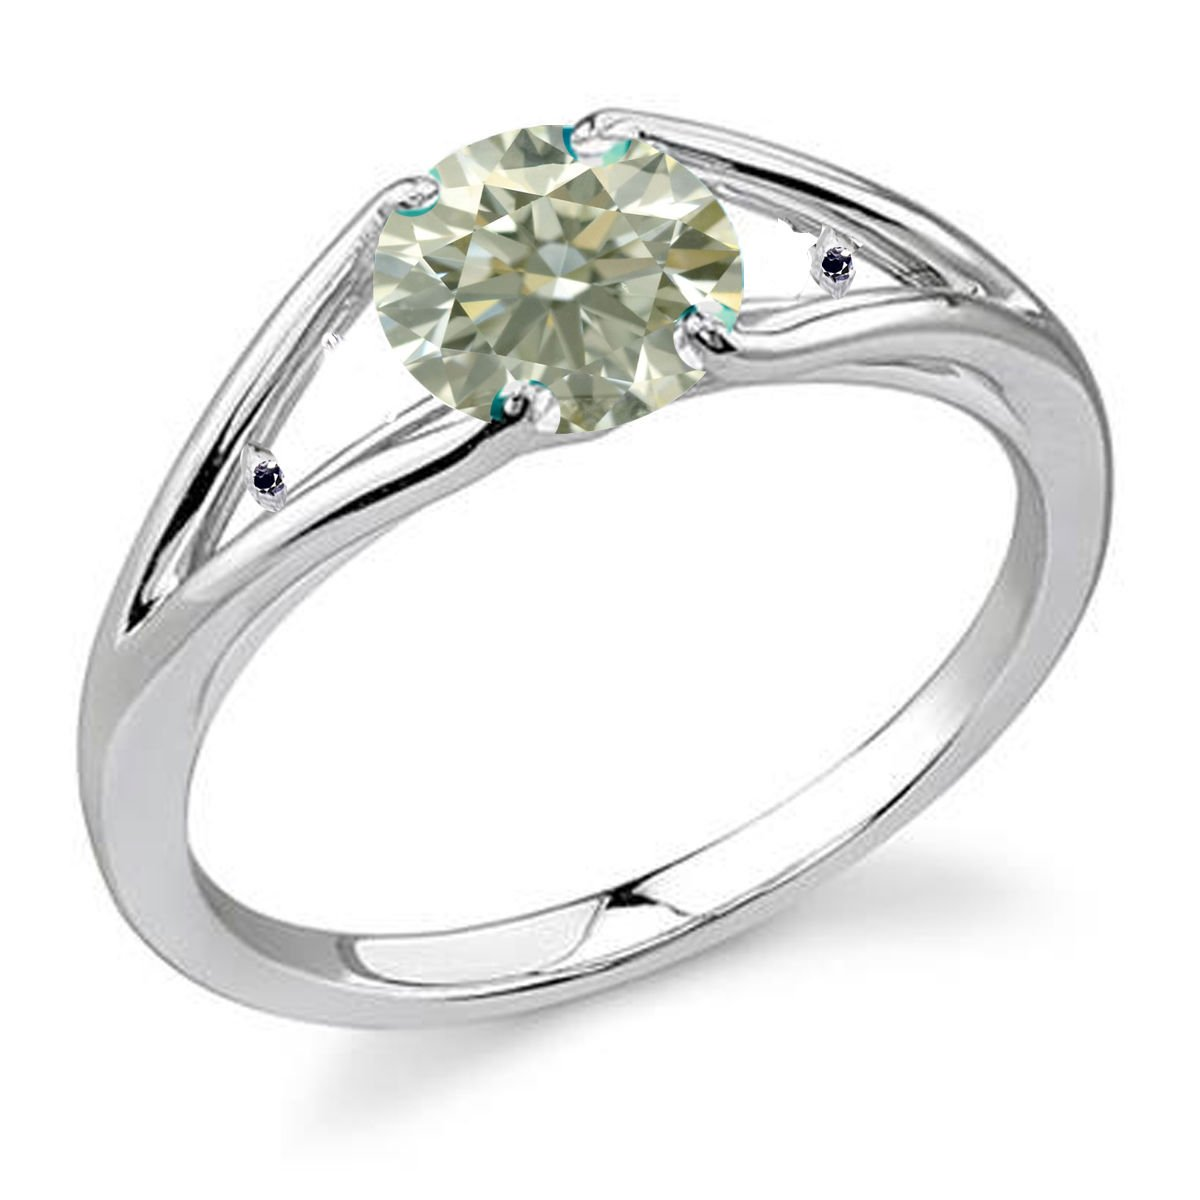 RINGJEWEL 1.22 ct SI2 Round Moissanite Solitaire Silver Plated Engagement Ring Off White Color Size 7 by RINGJEWEL